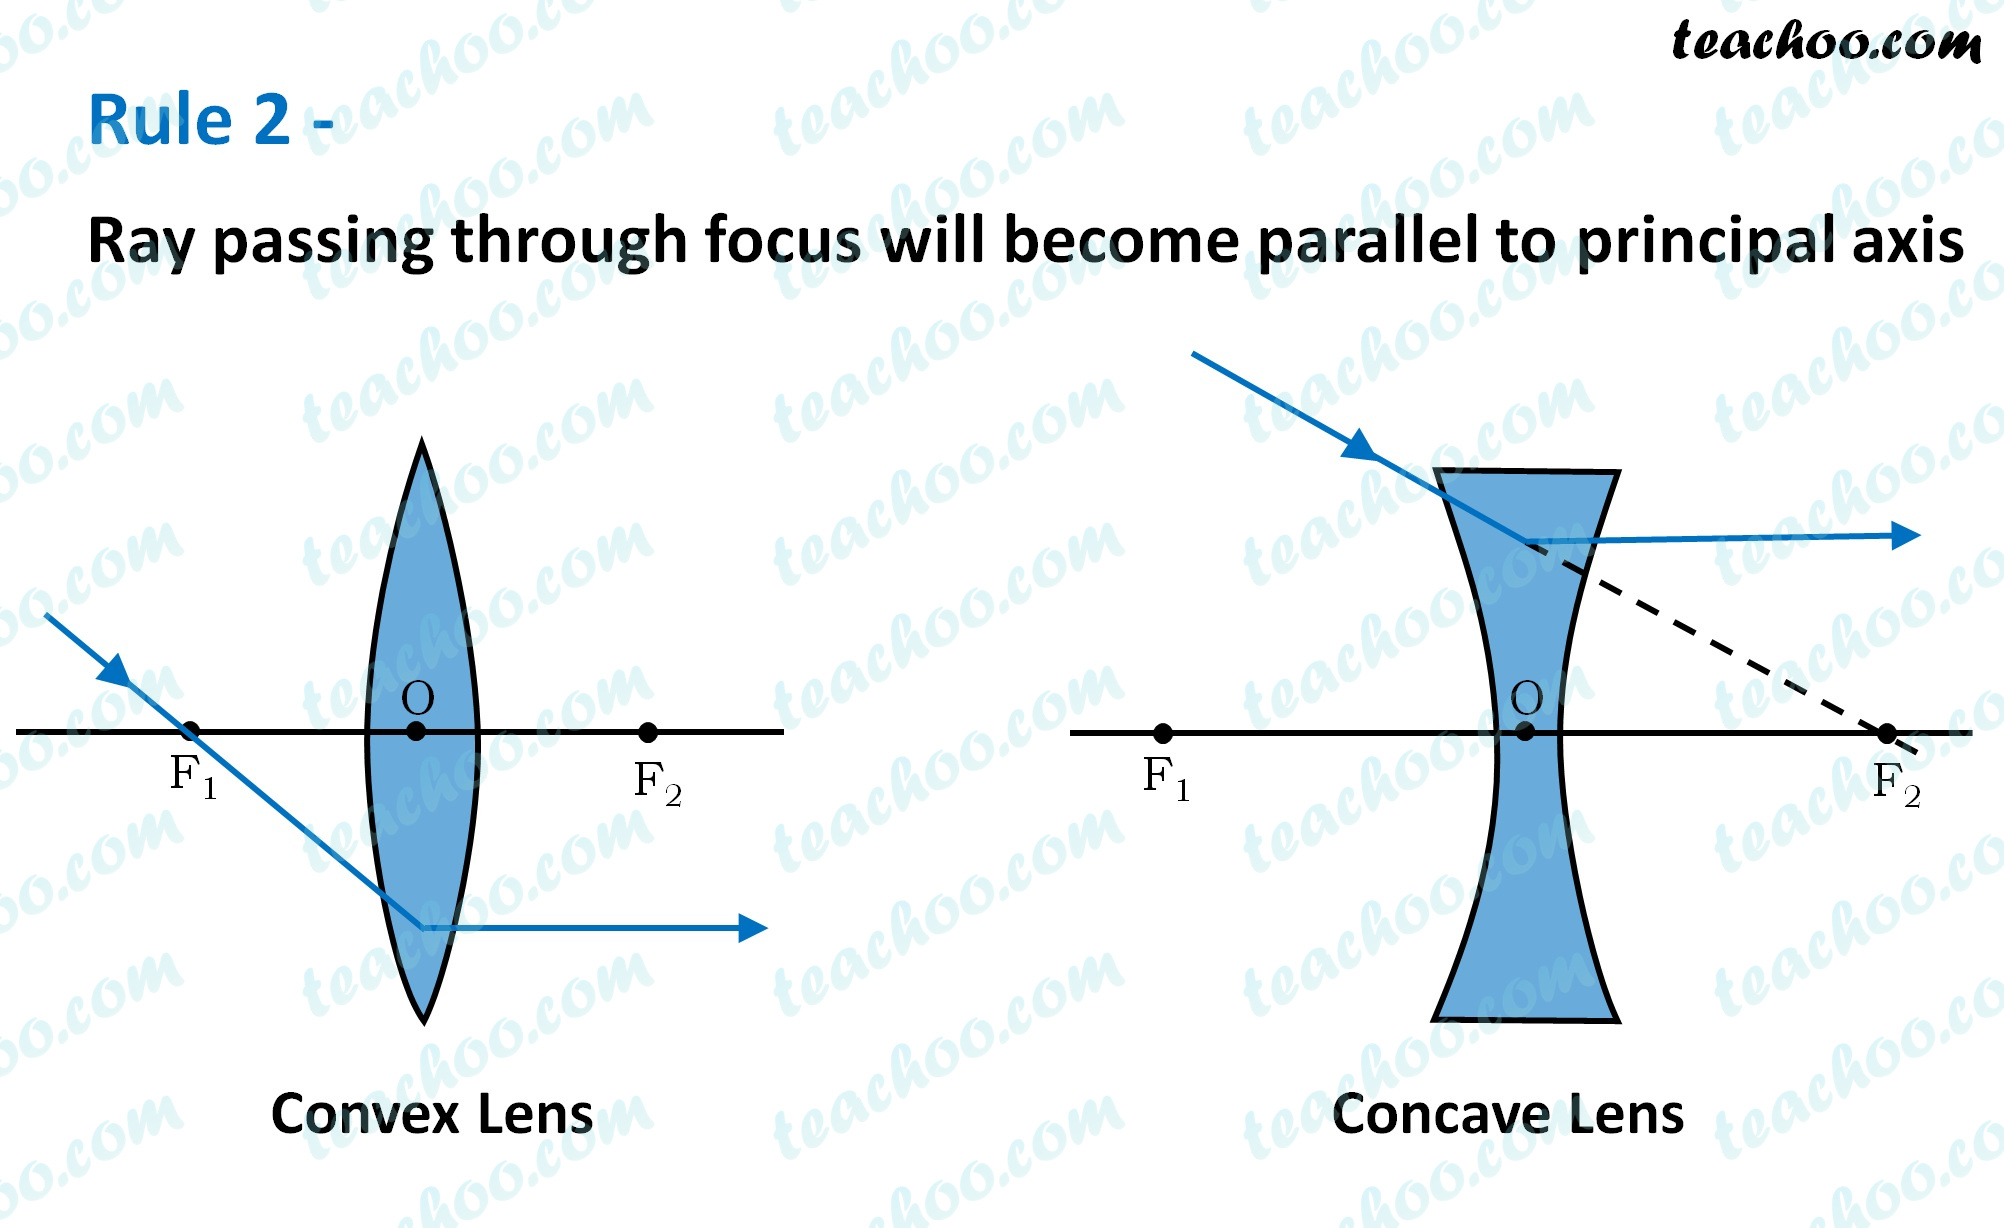 rule-2---ray-passing-through-focus-will-become-parallel-to-principal-axis---teachoo.jpg